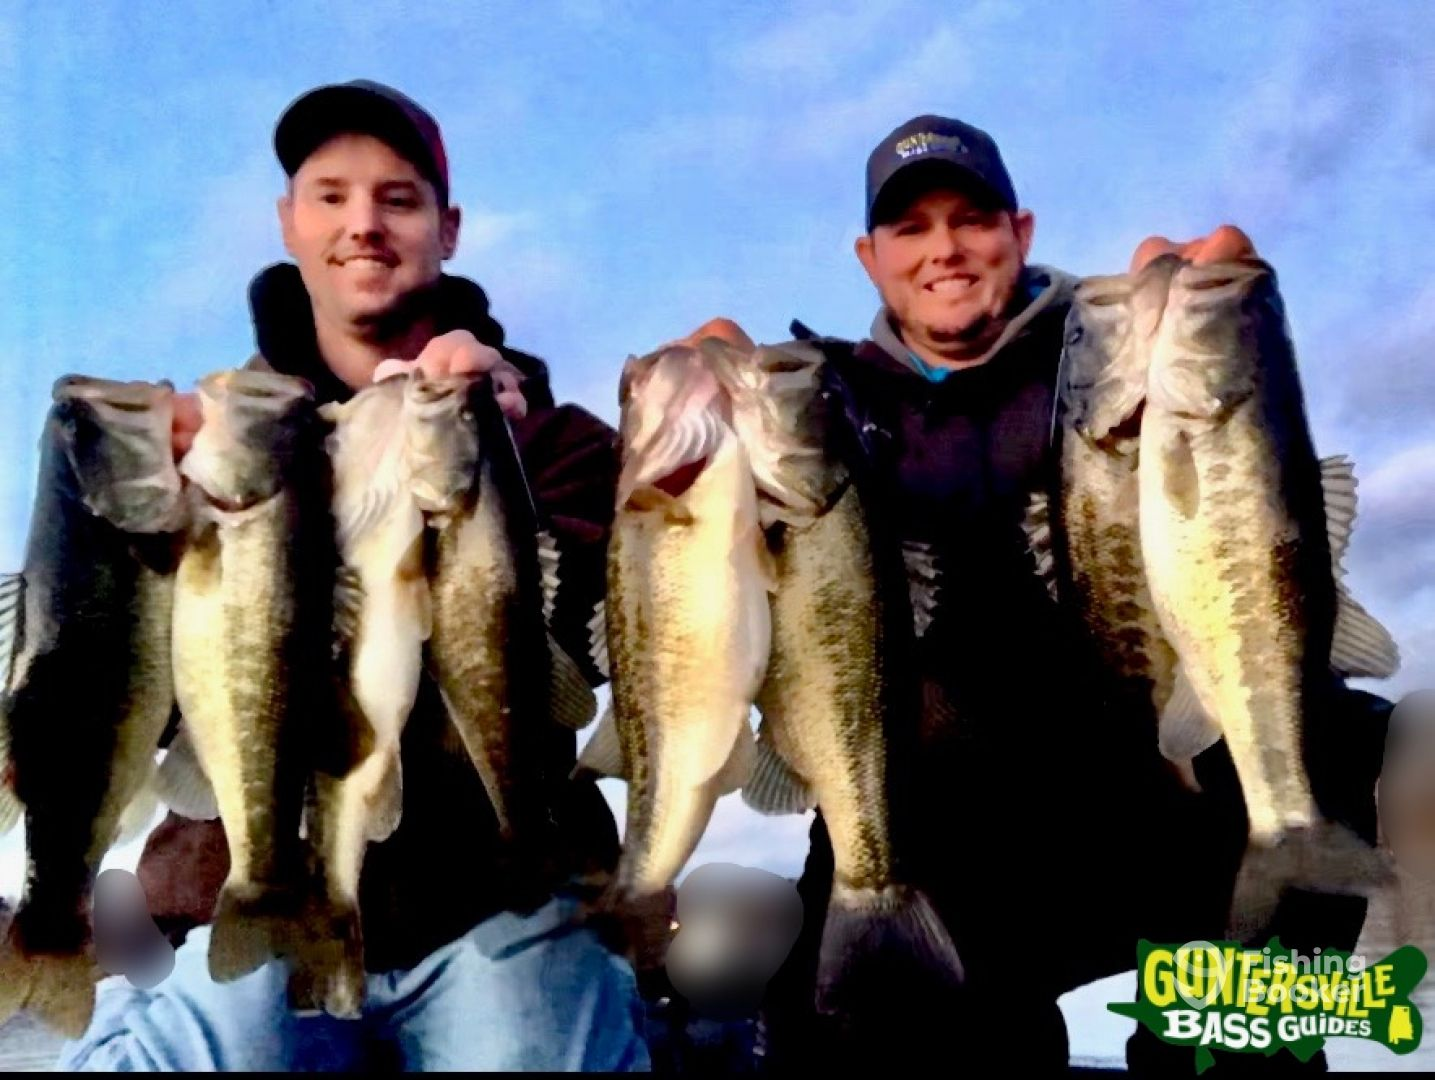 guntersville fishing report Lake Guntersville Bass Fishing Report 2/ - Guntersville Fishing ...